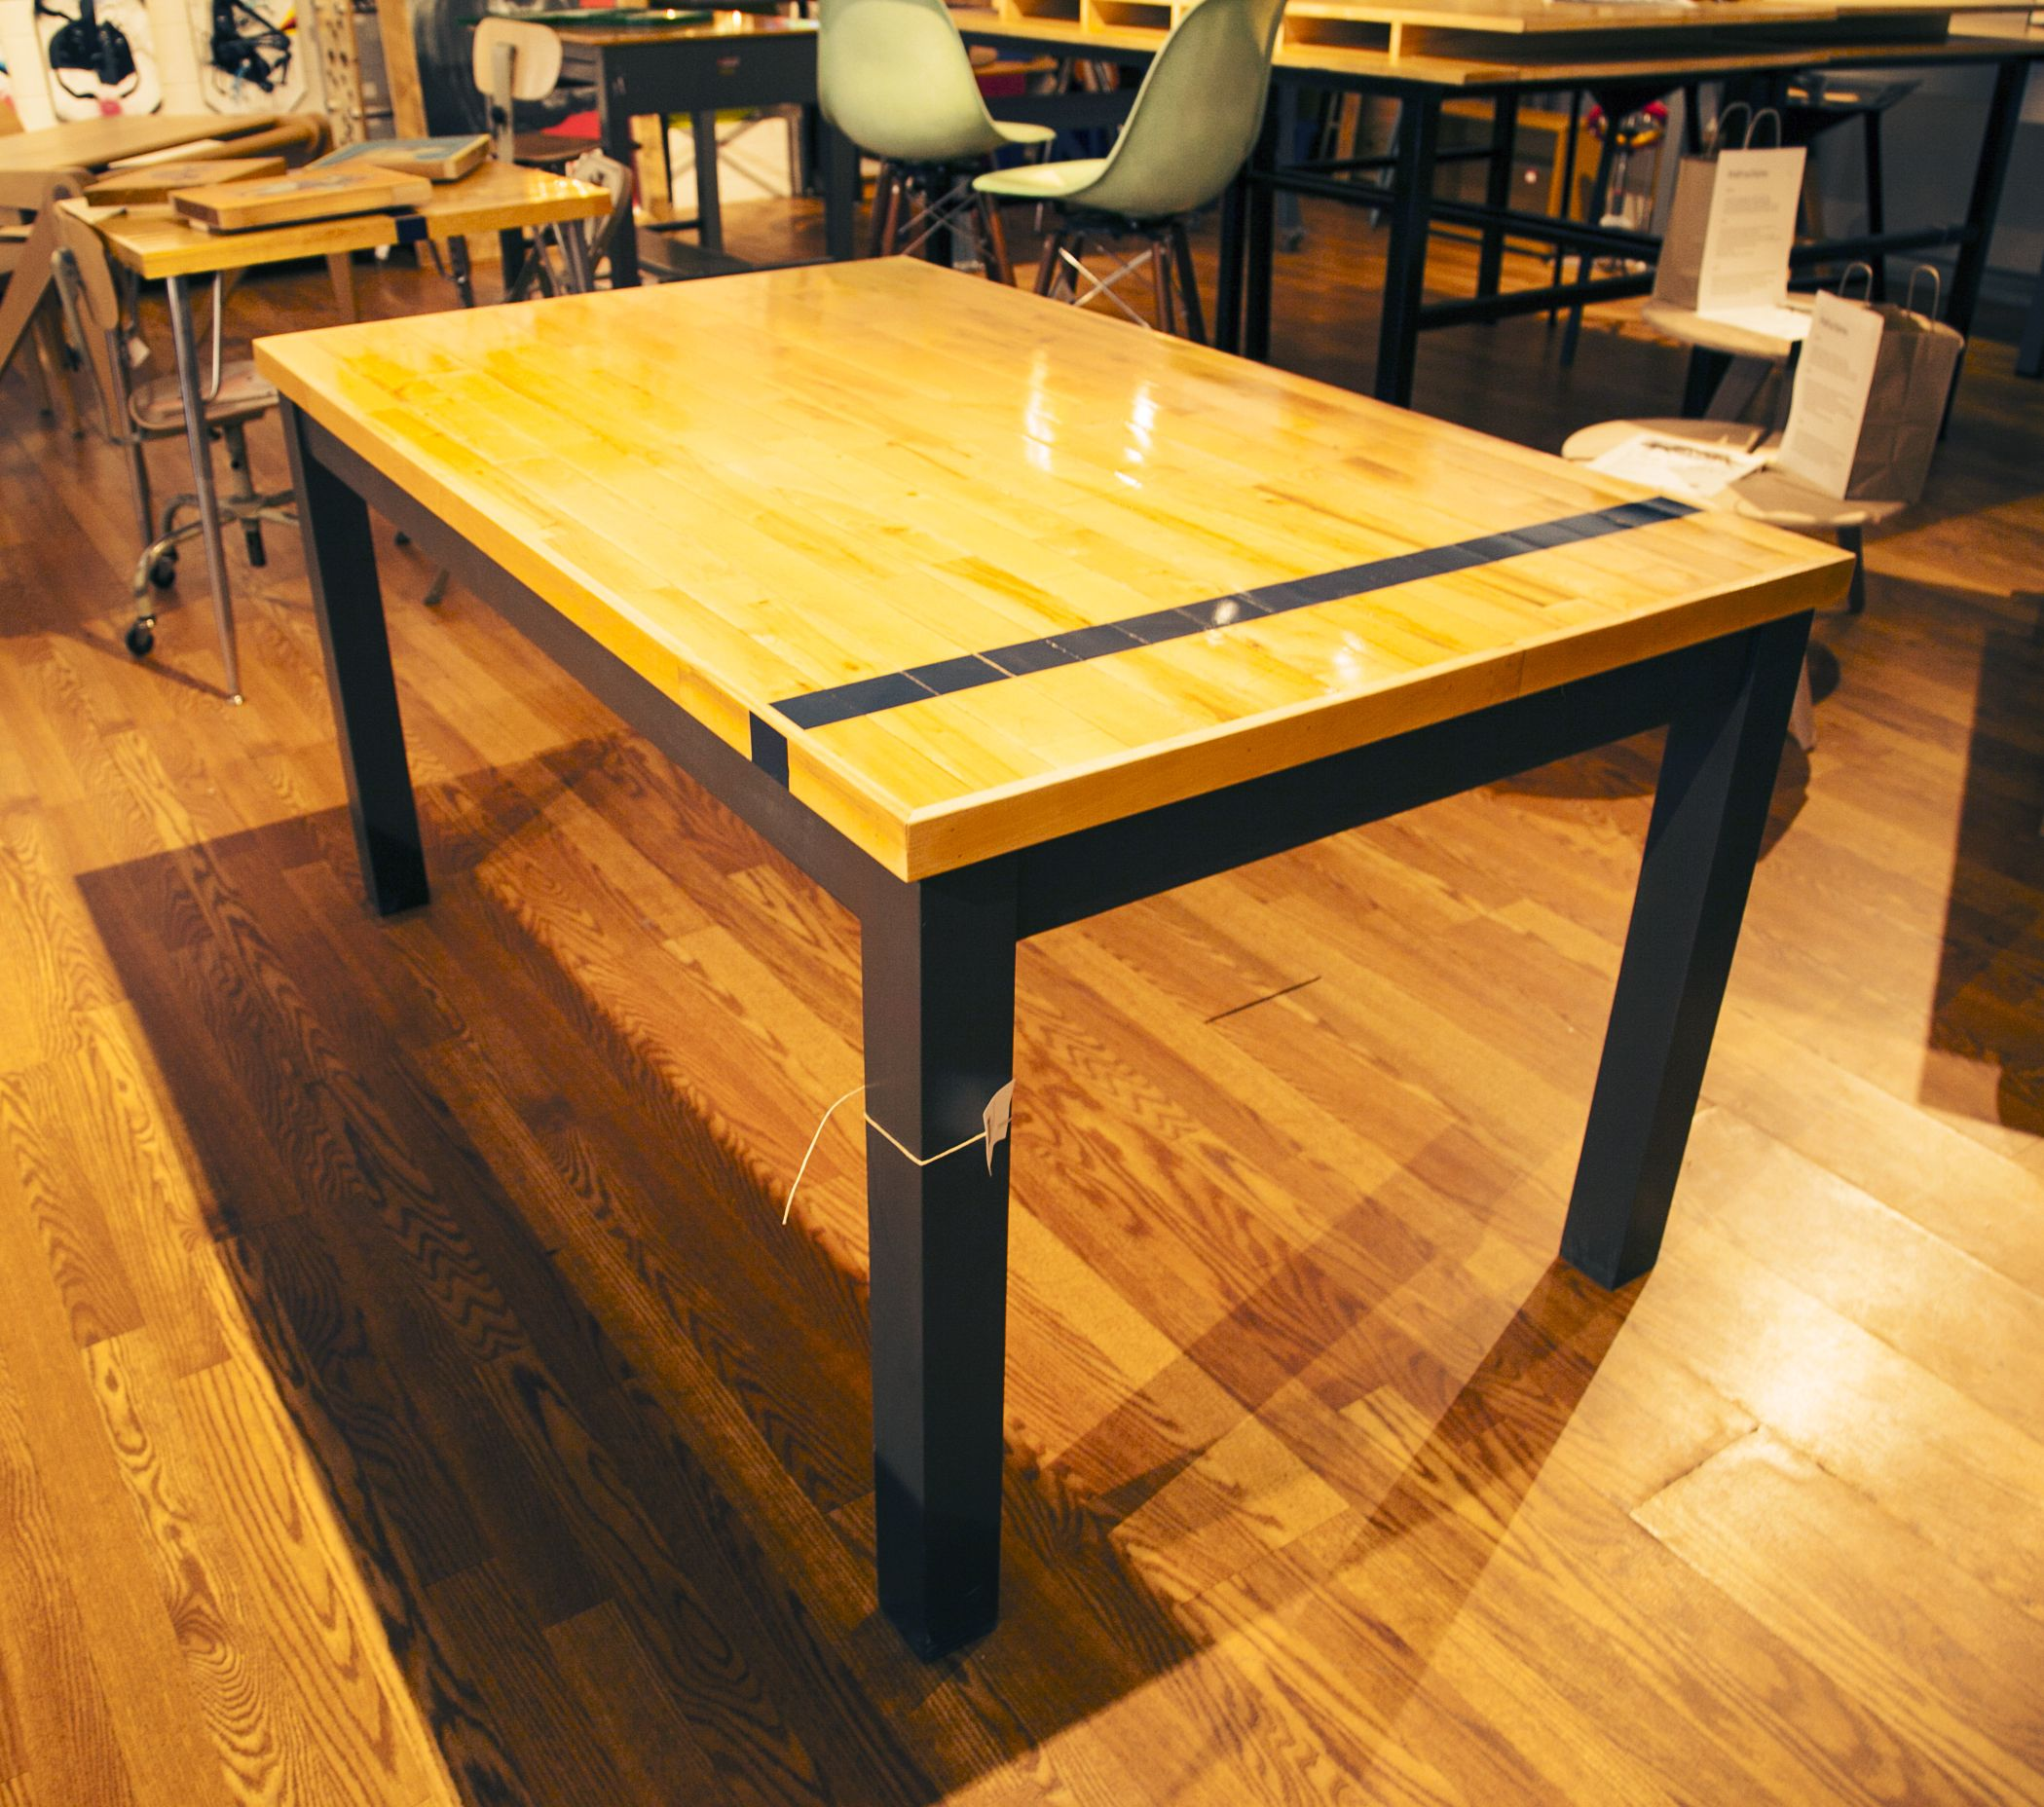 Desk Or Dining, This Upcycled Basketball Flooring Table